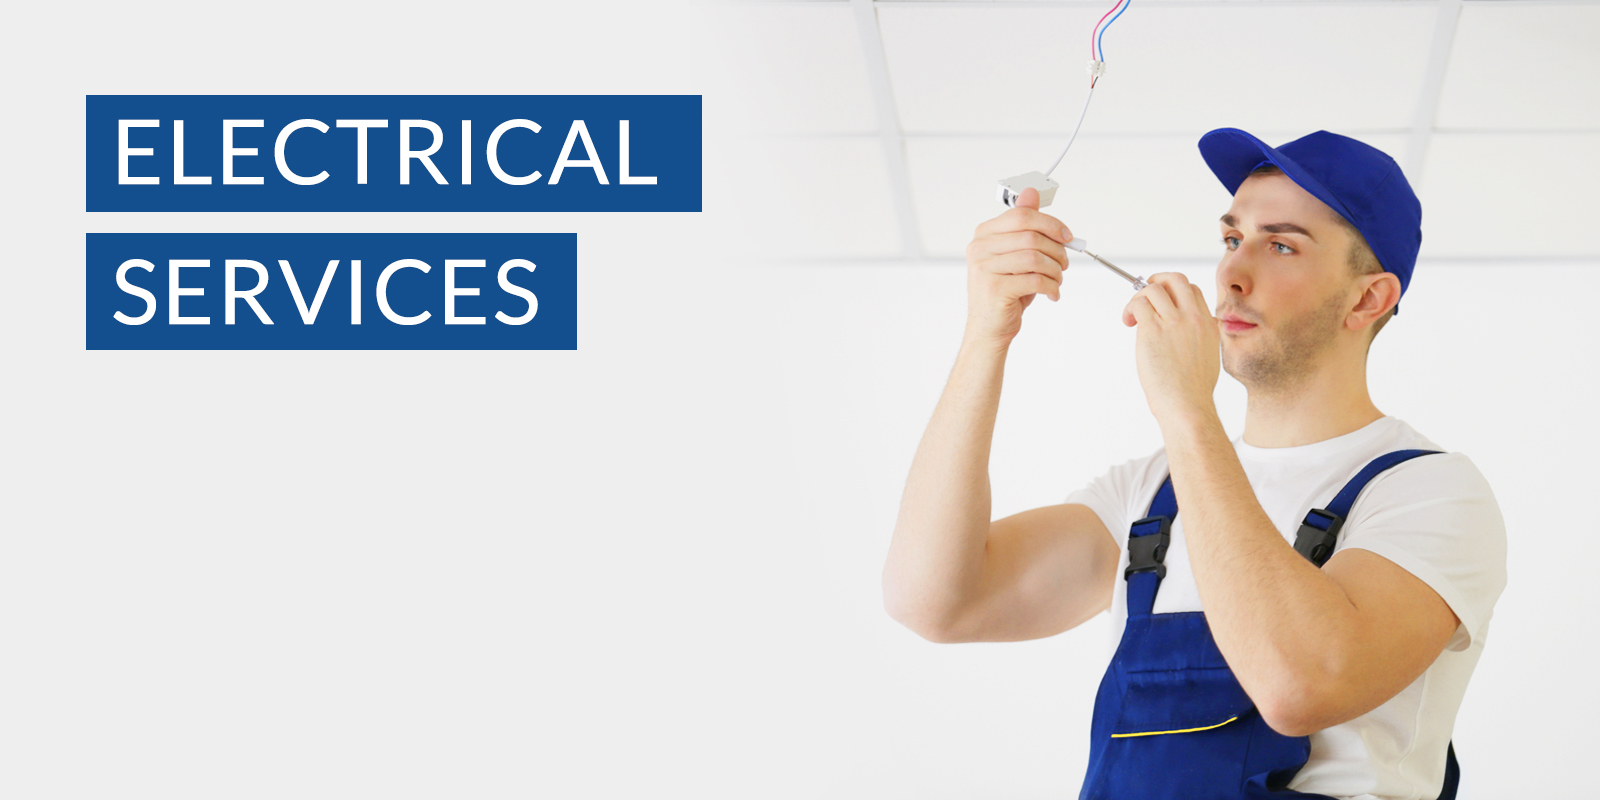 electrical services in ballarat area